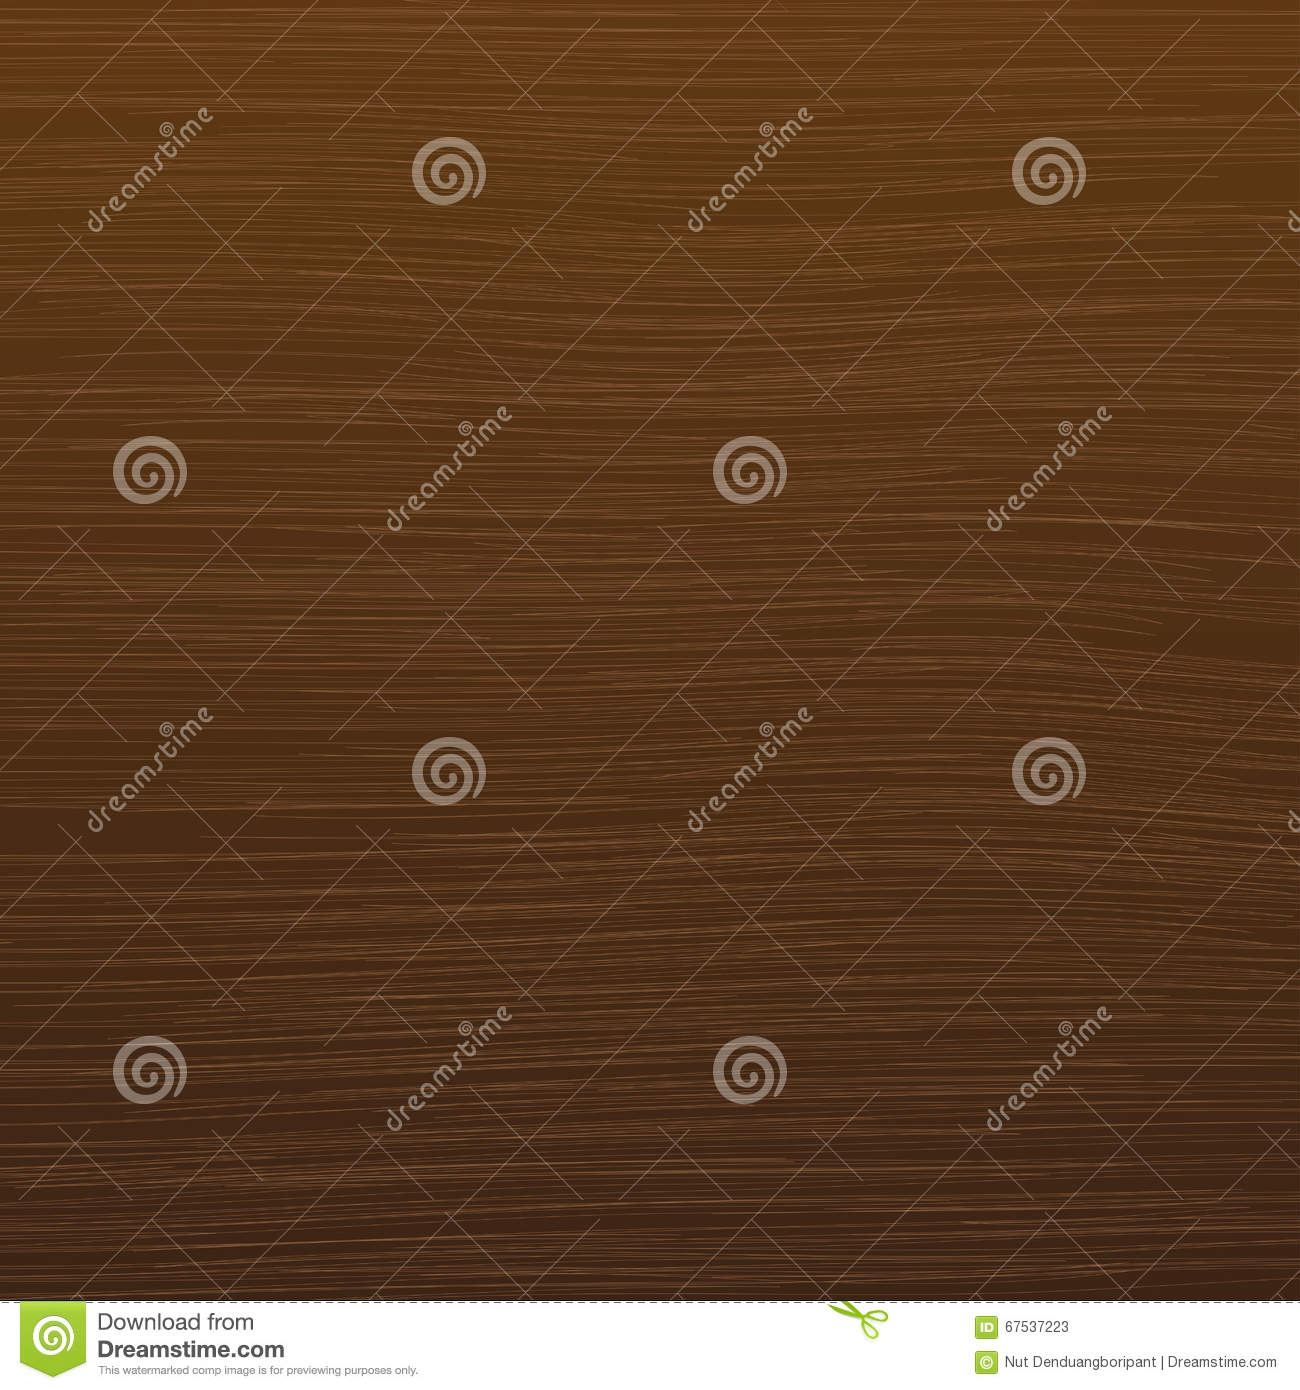 Dark Wood Background Texture Stock Vector - Image: 67537223